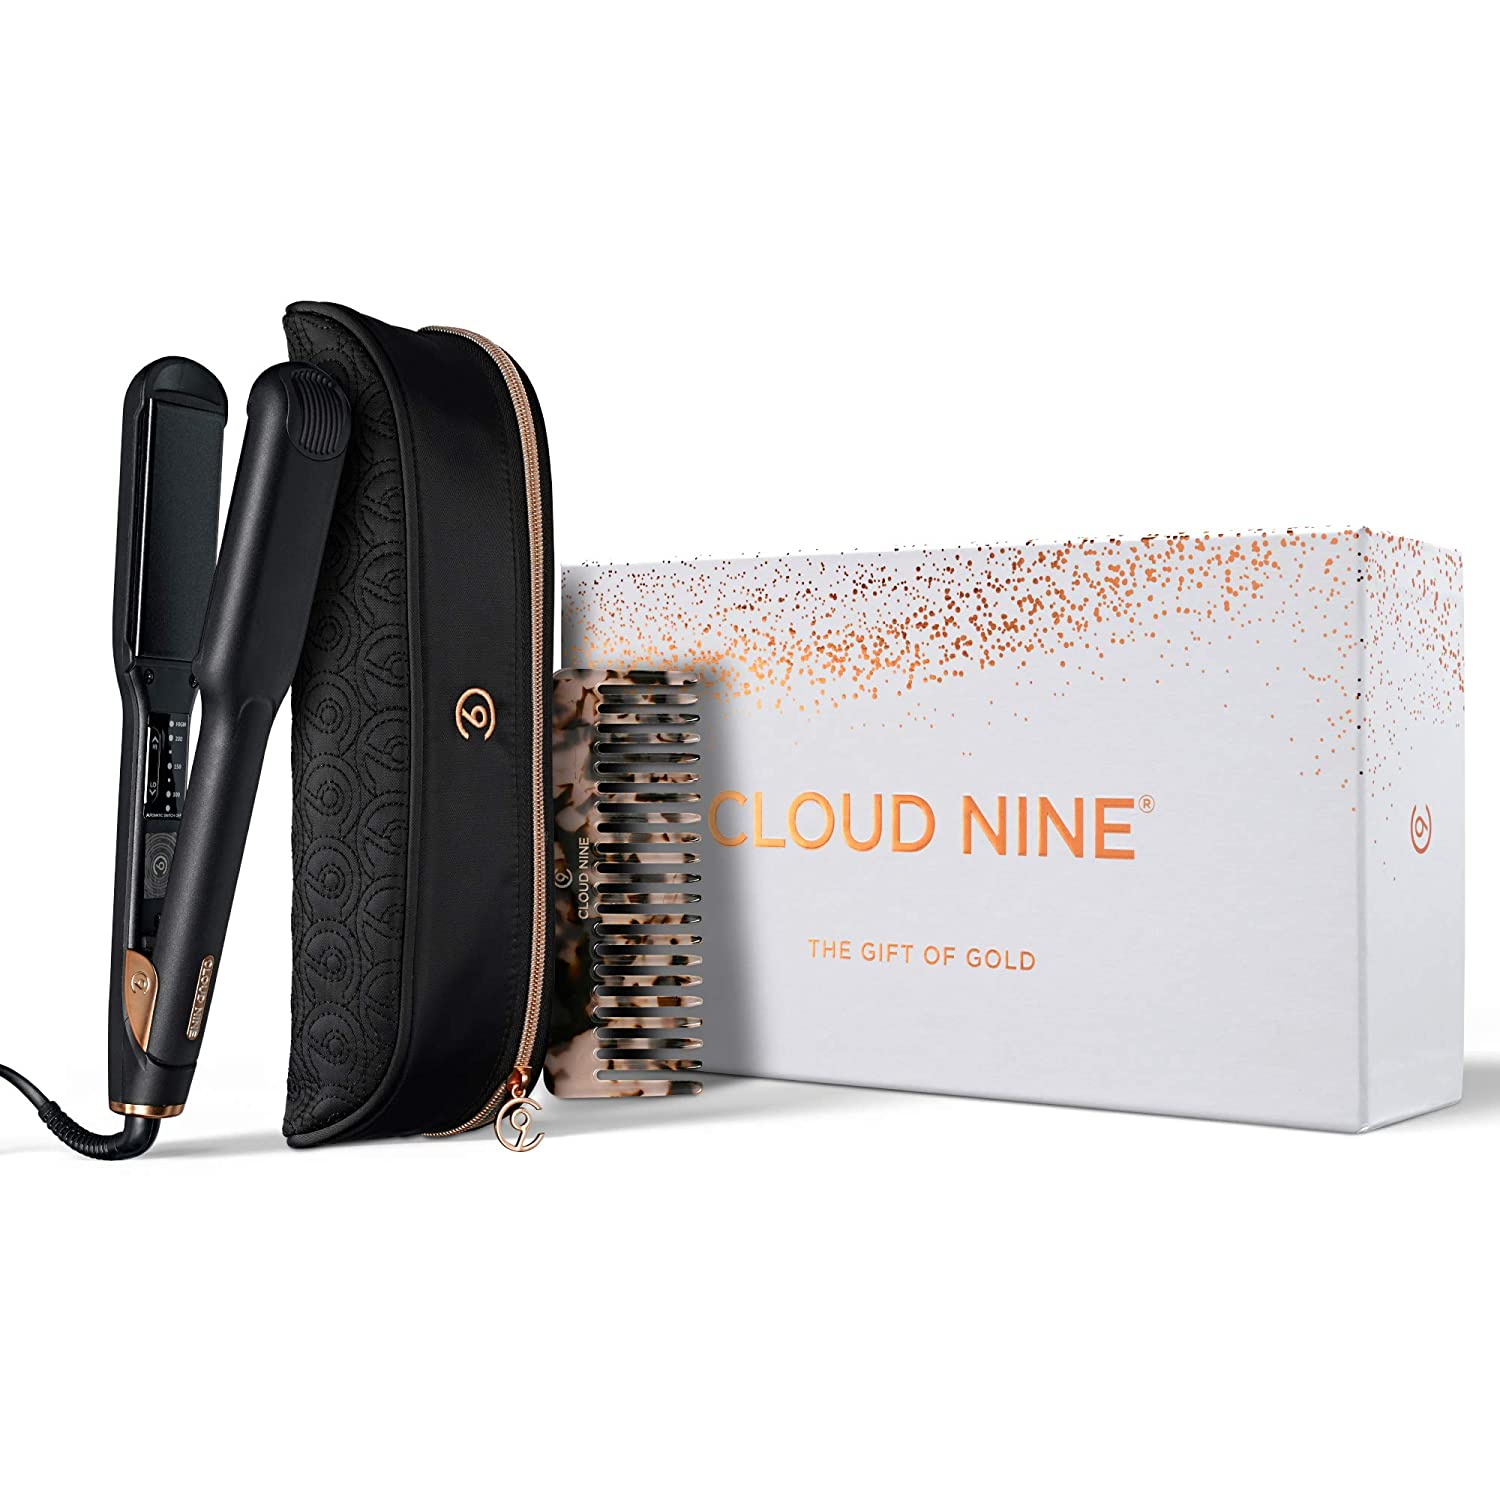 Cloud Nine The Wide Iron Gift of Gold Set